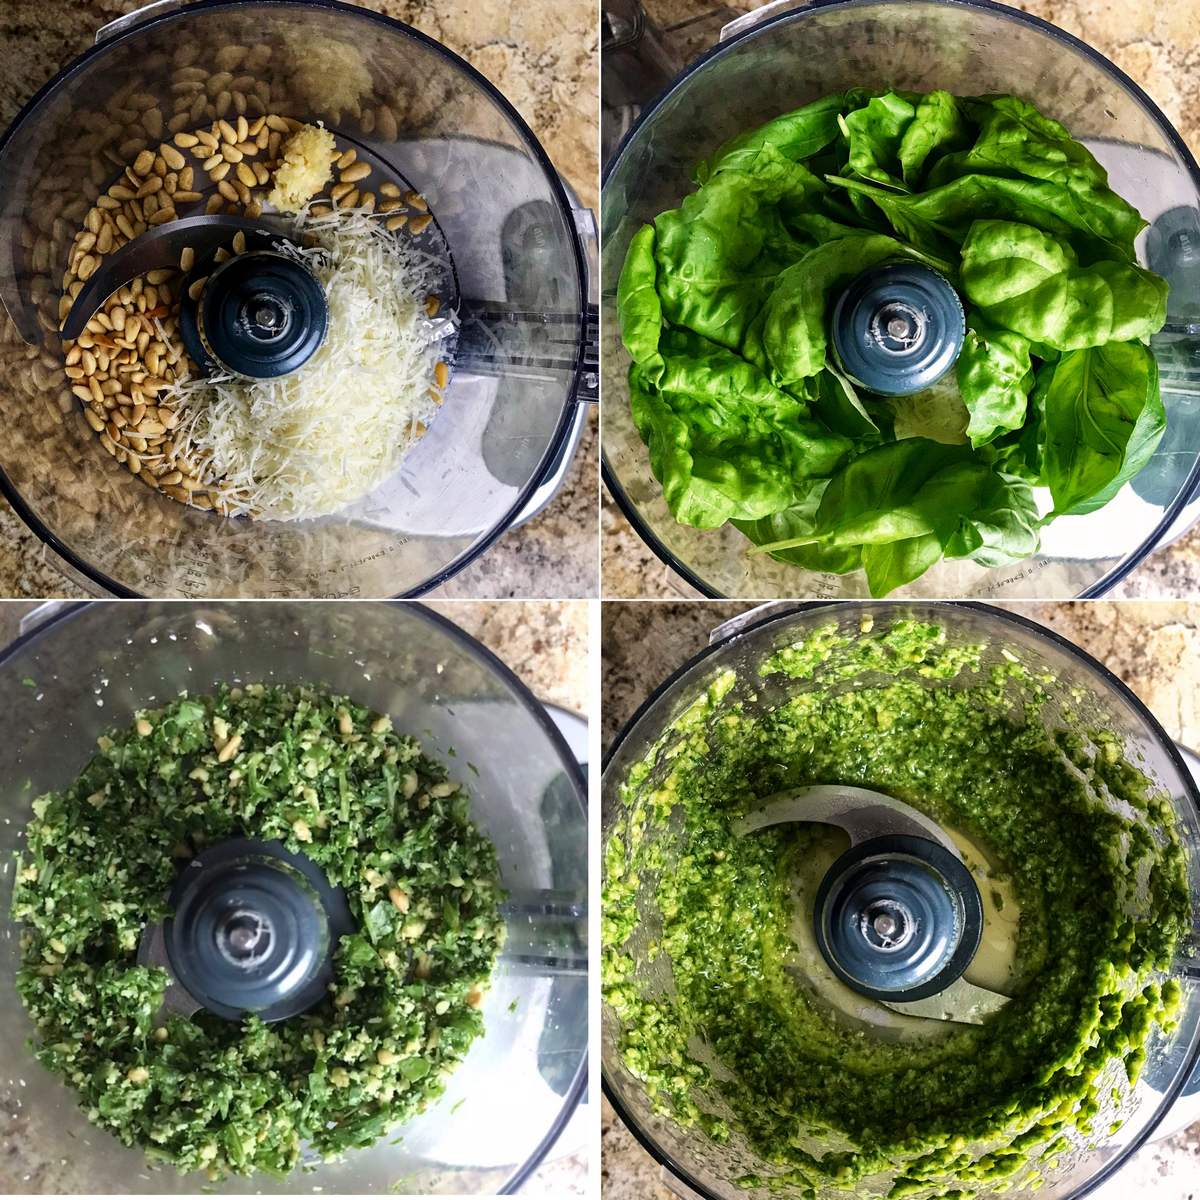 Some of the steps to making pesto are shown. 1-gently pulse toasted pine nuts, Romano cheese and minced garlic together. 2-add the fresh basil leaves and pulse 3-